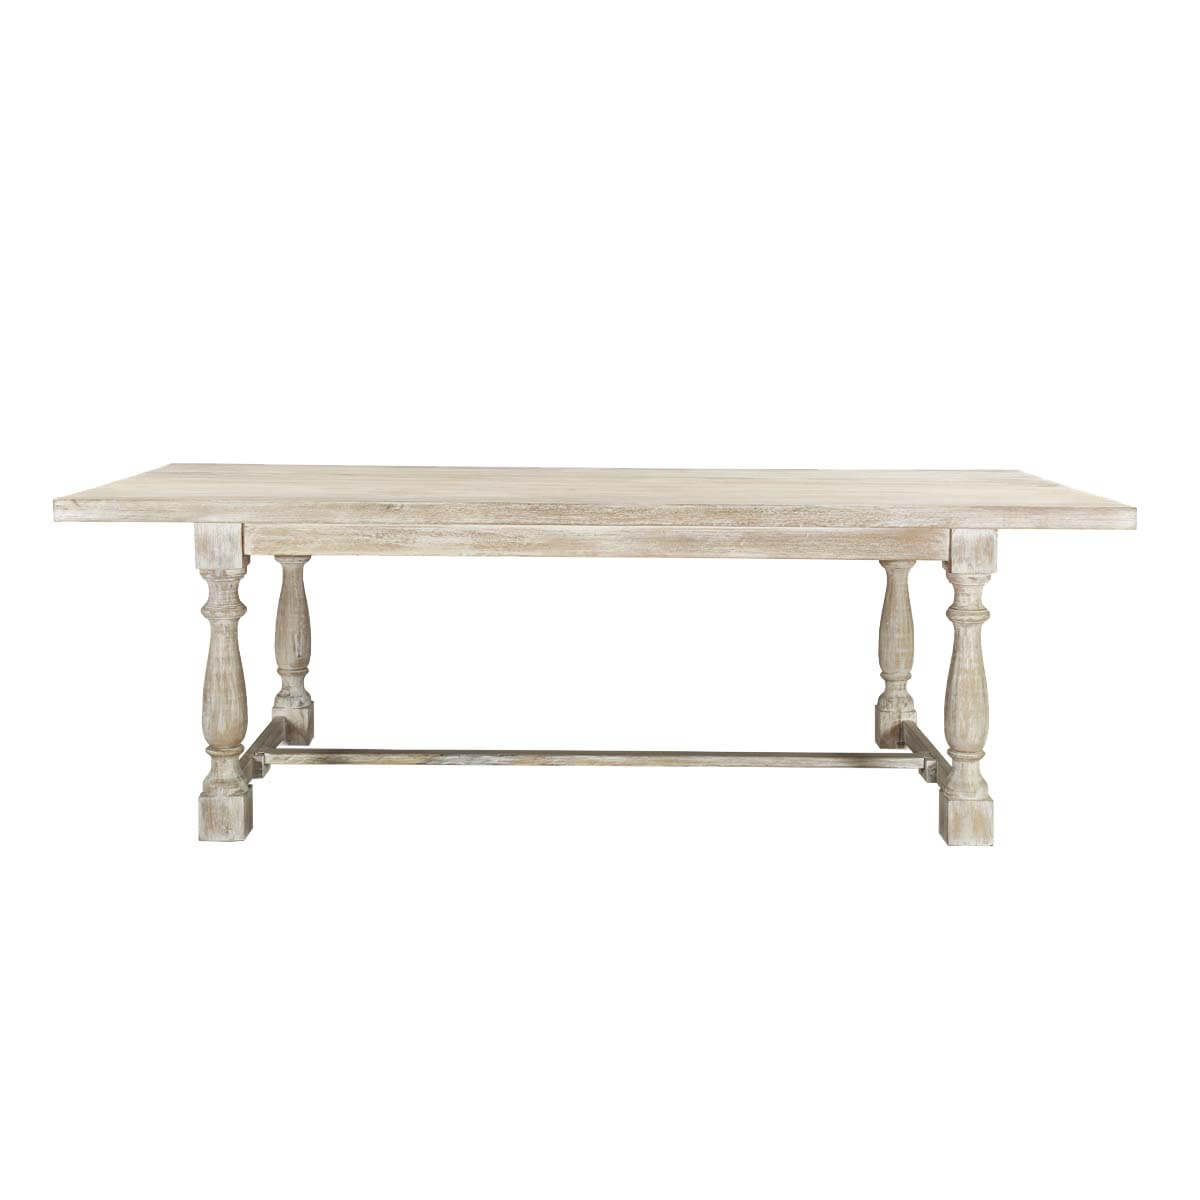 Distressed Trestle Dining Table Dining Table Or Trestle  : 83371 from www.honansantiques.com size 1200 x 1200 jpeg 60kB